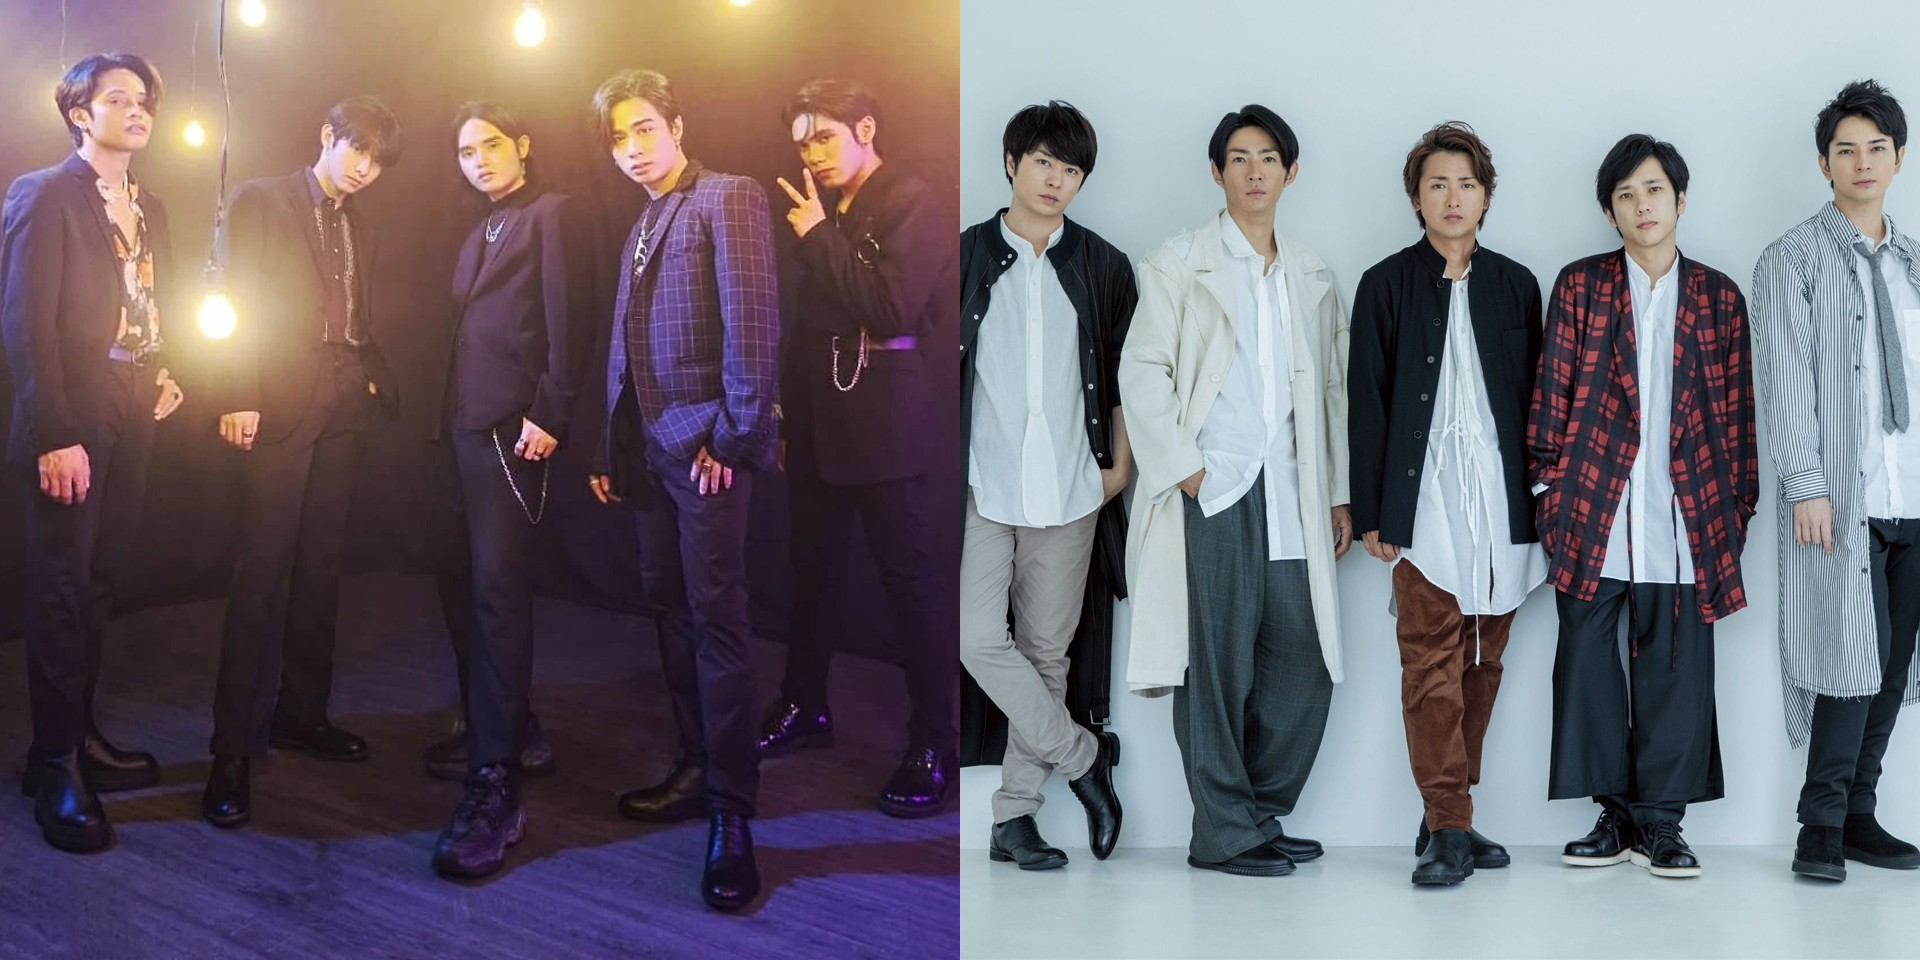 SB19 and ARASHI fans team up for Twitter-trending virtual streaming parties